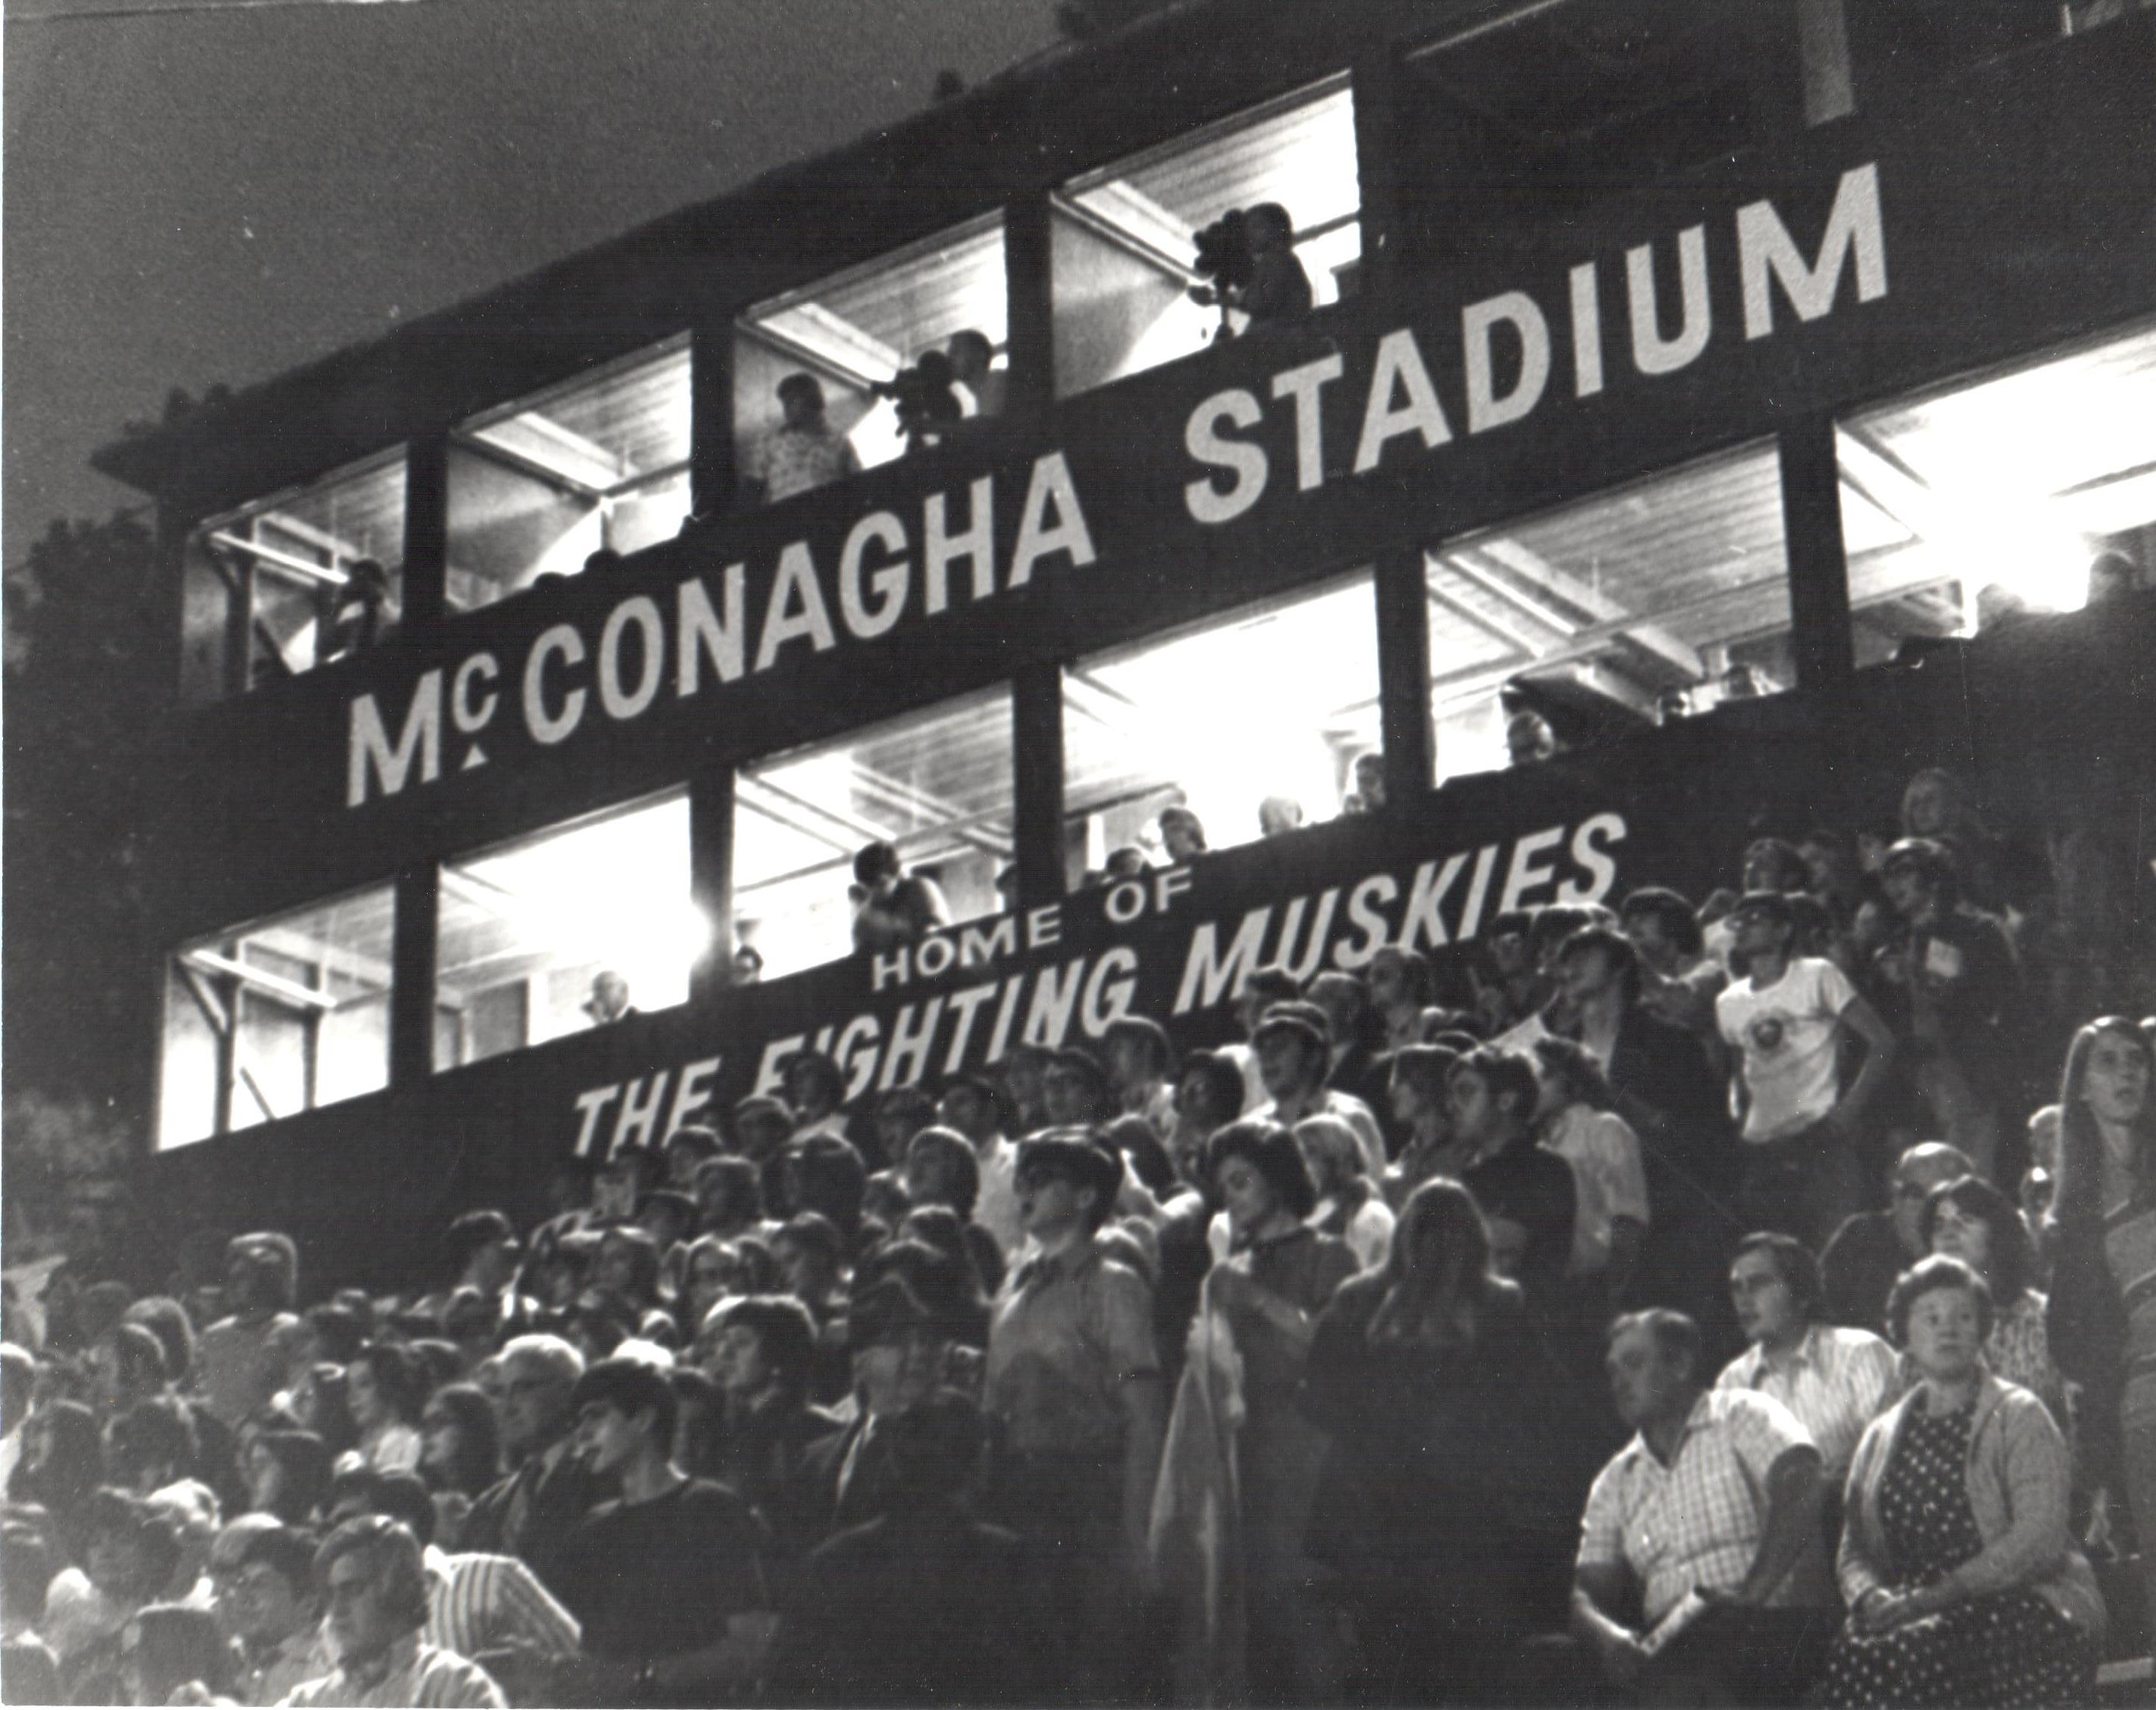 Muskie Fans watching a sporting event at the stadium. Attending sporting events was a way for Muskies to bond as a community, as it still is today.